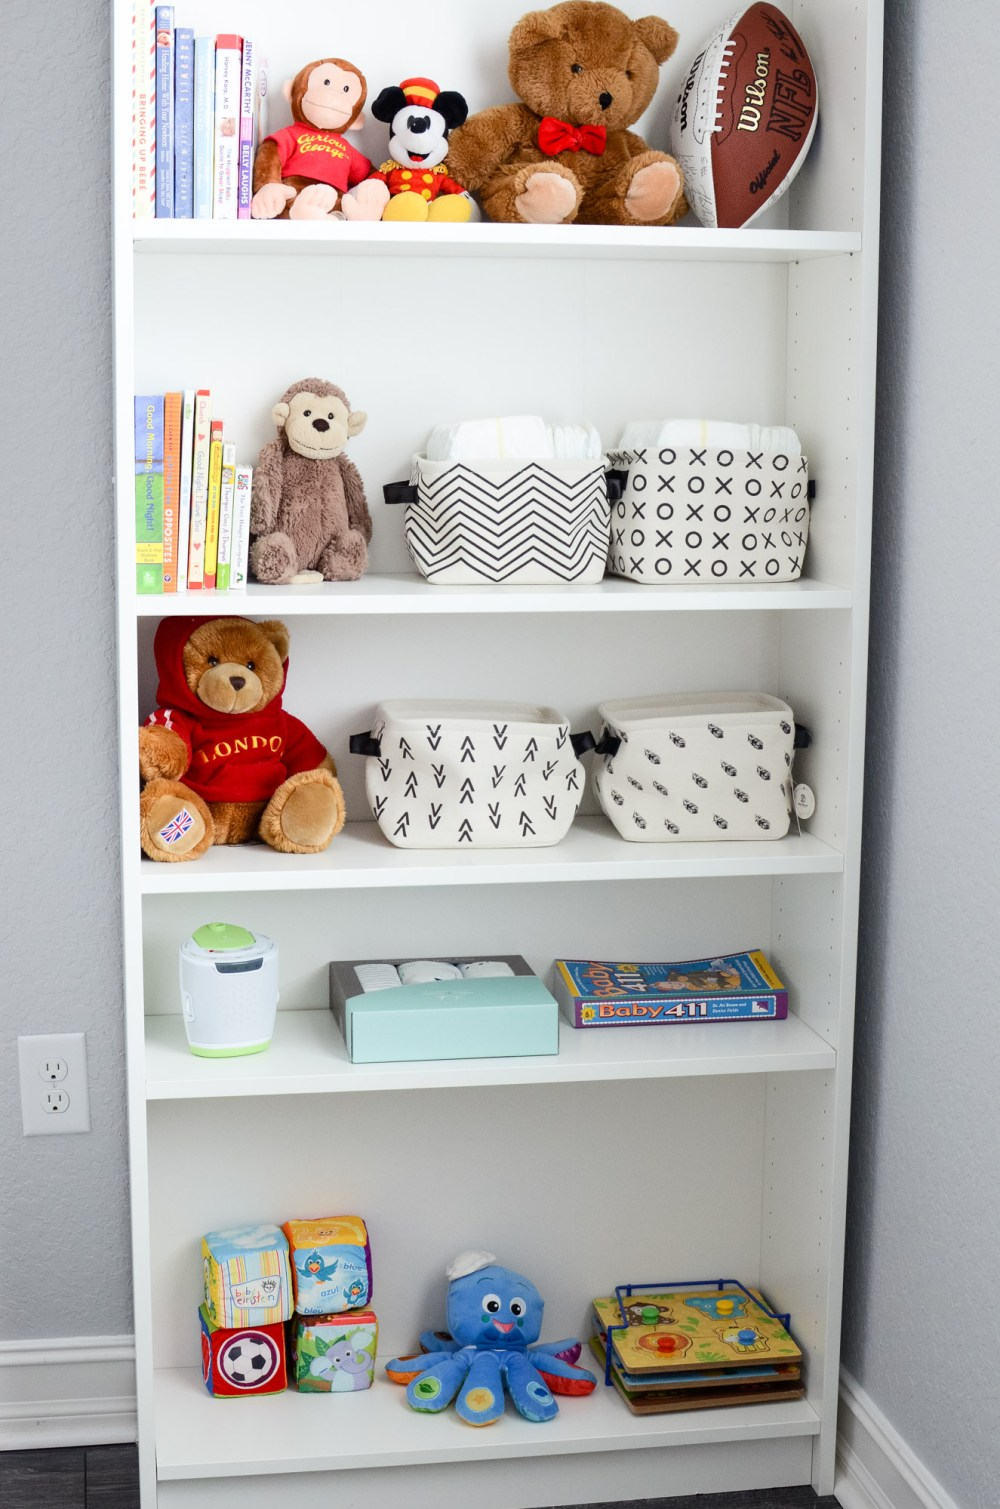 nursery decor, nursery ideas, nursery shelving